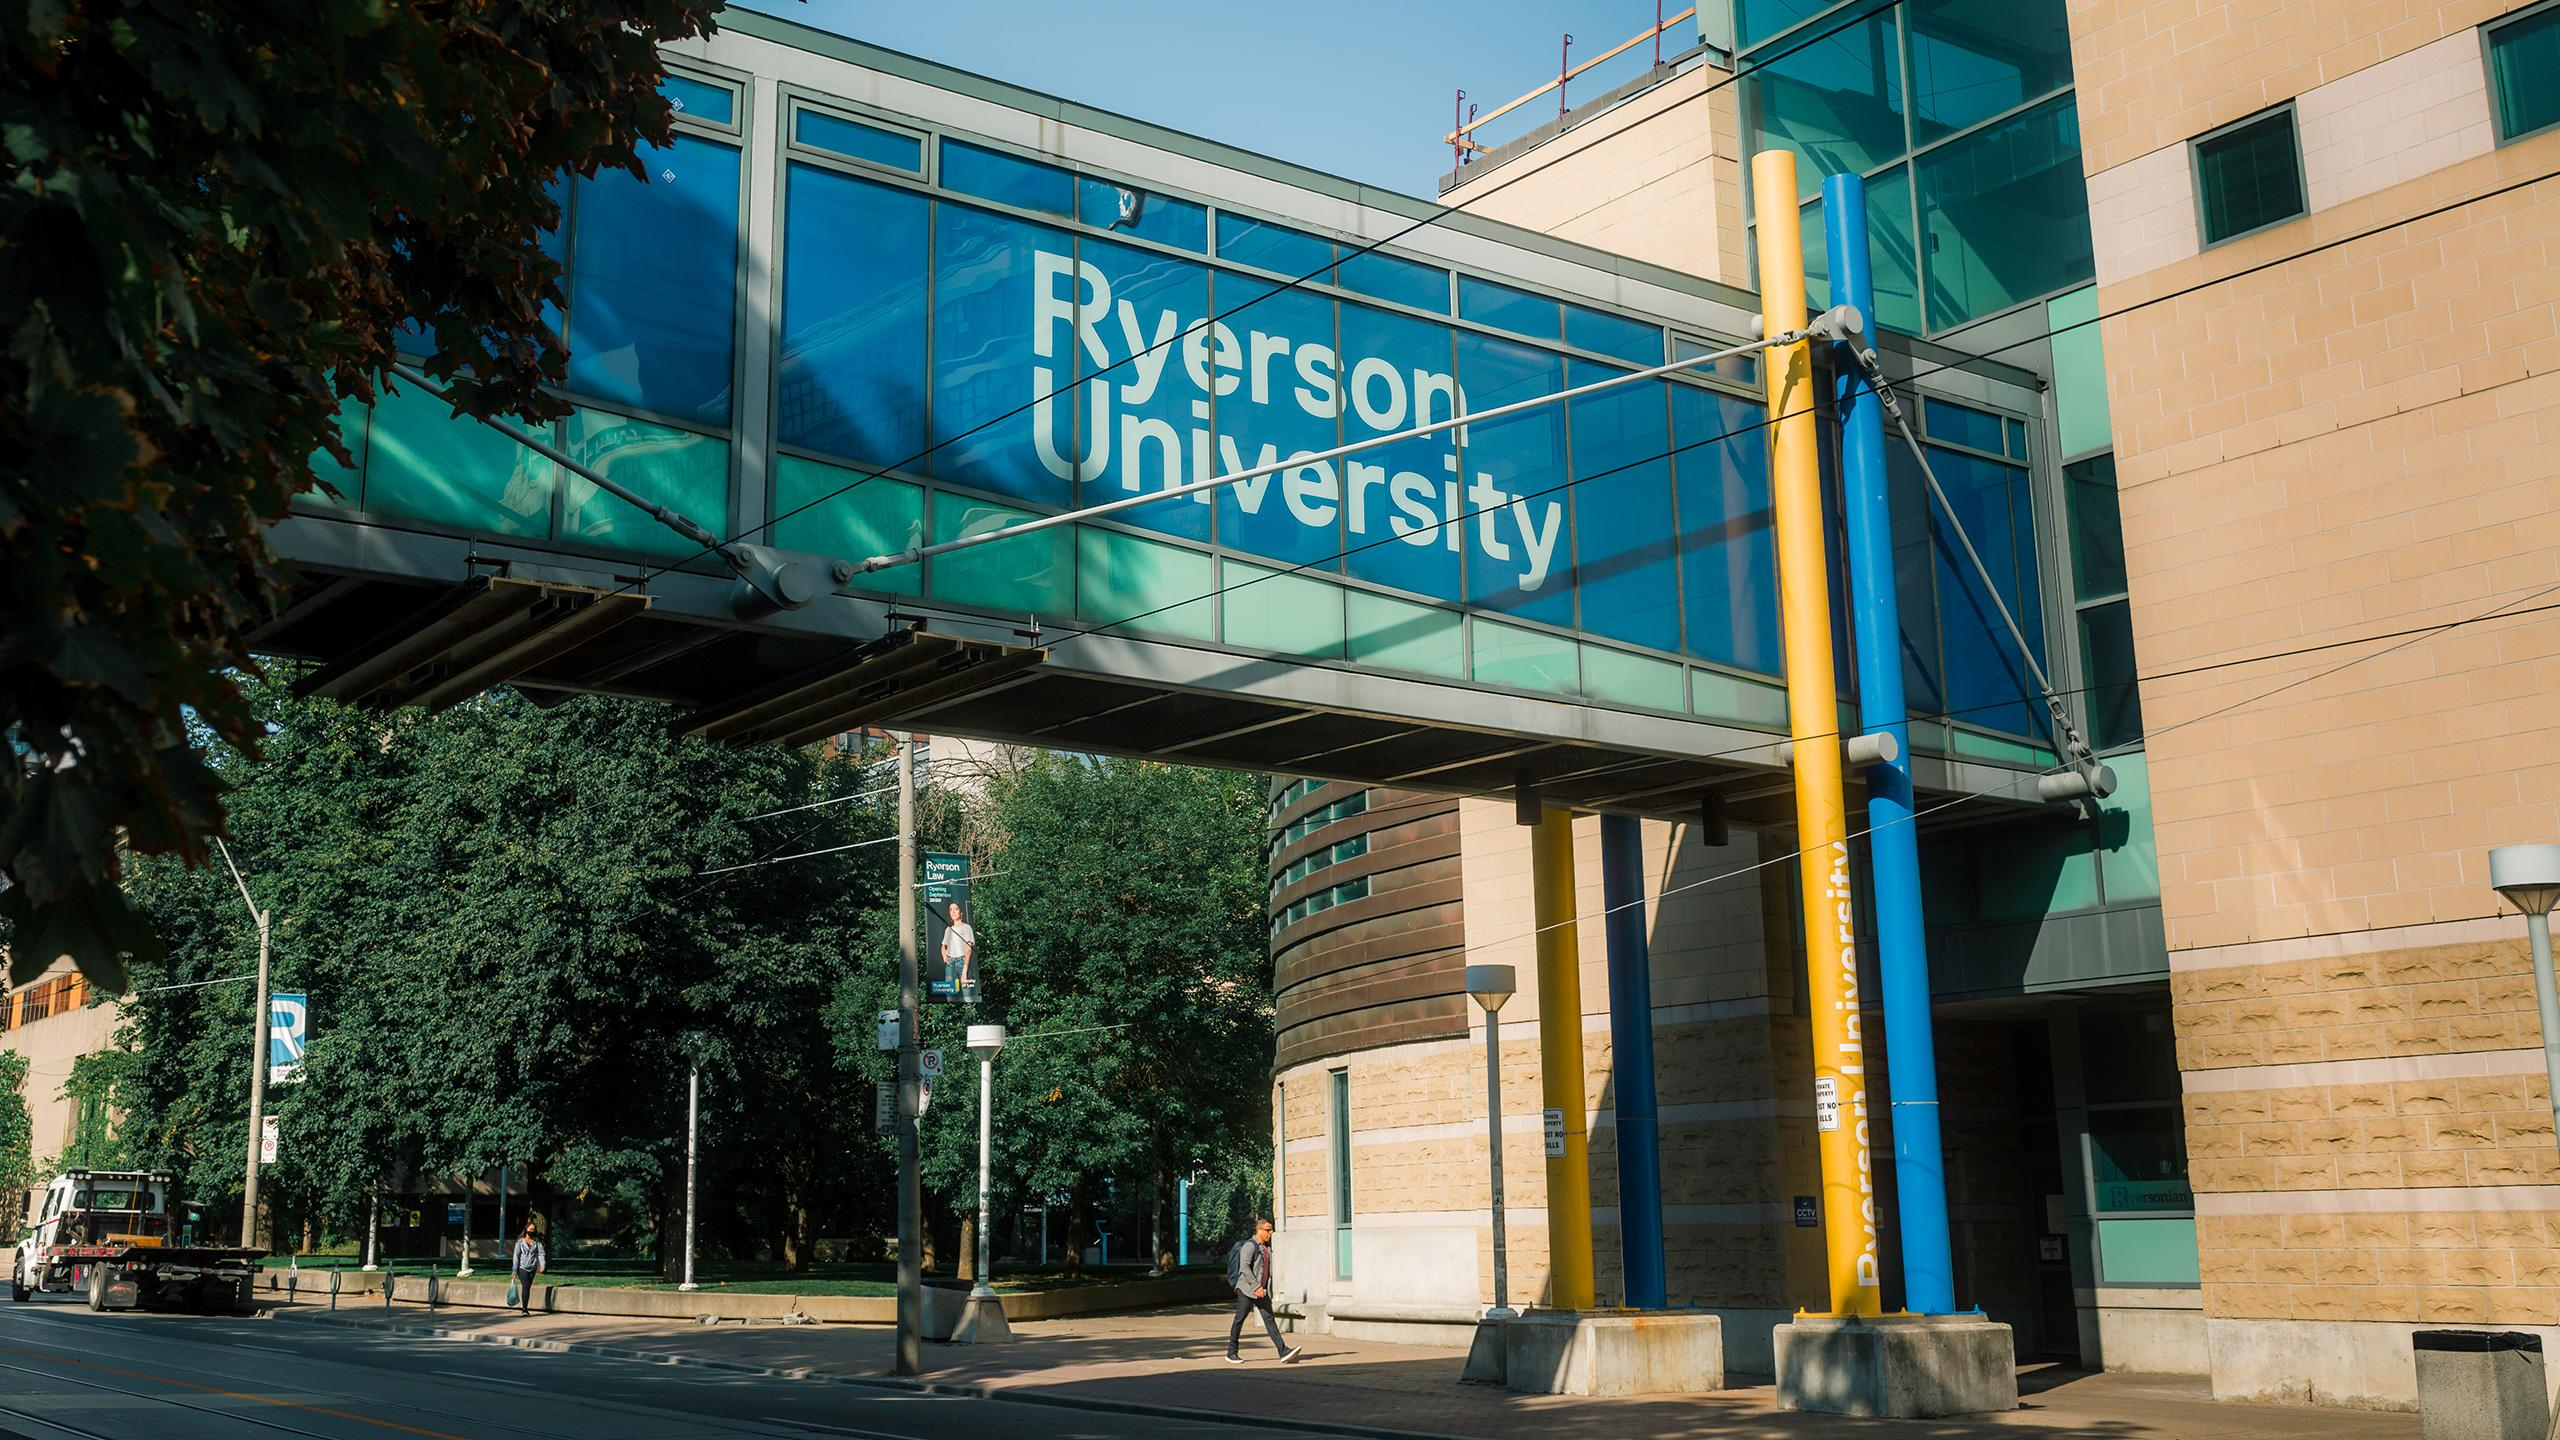 Photo of the bridge between Kerr Hall and RCC on Gould Street that says Ryerson University.